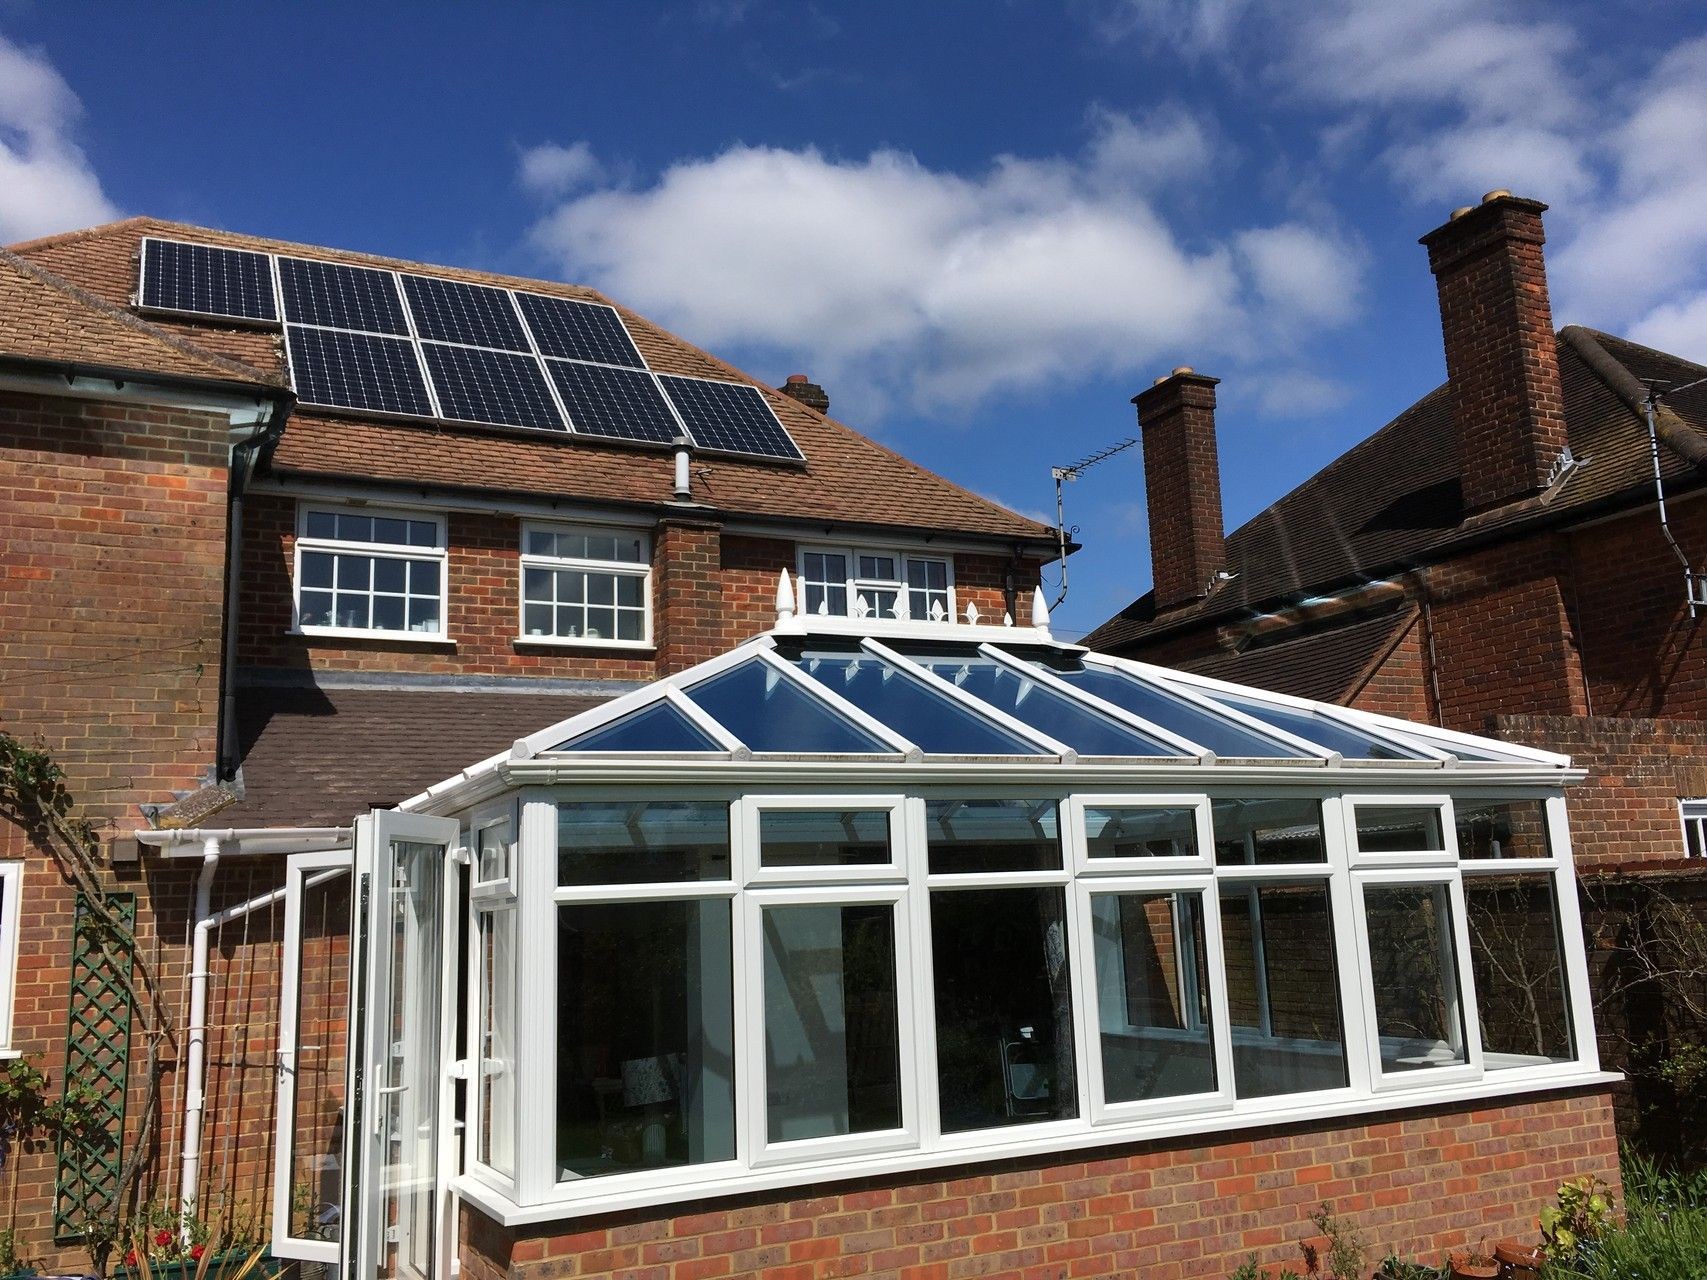 The Film Is Applied To The Internal Face Of The Glass And Is Available In Variations Suitable For Glass Or Polycarbon Window Film Conservatory Roof Roof Window